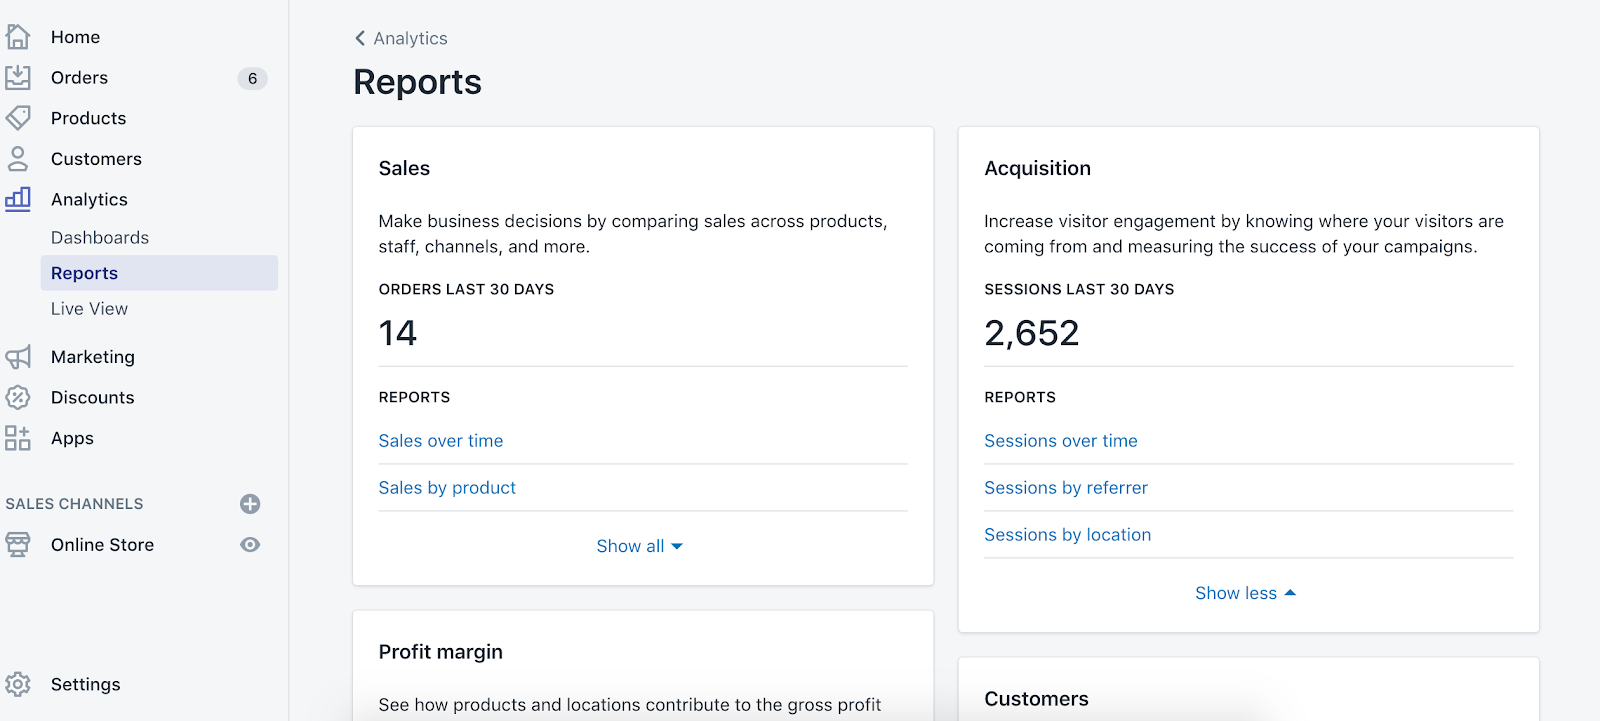 Acquisition reports in Shopify dashboard